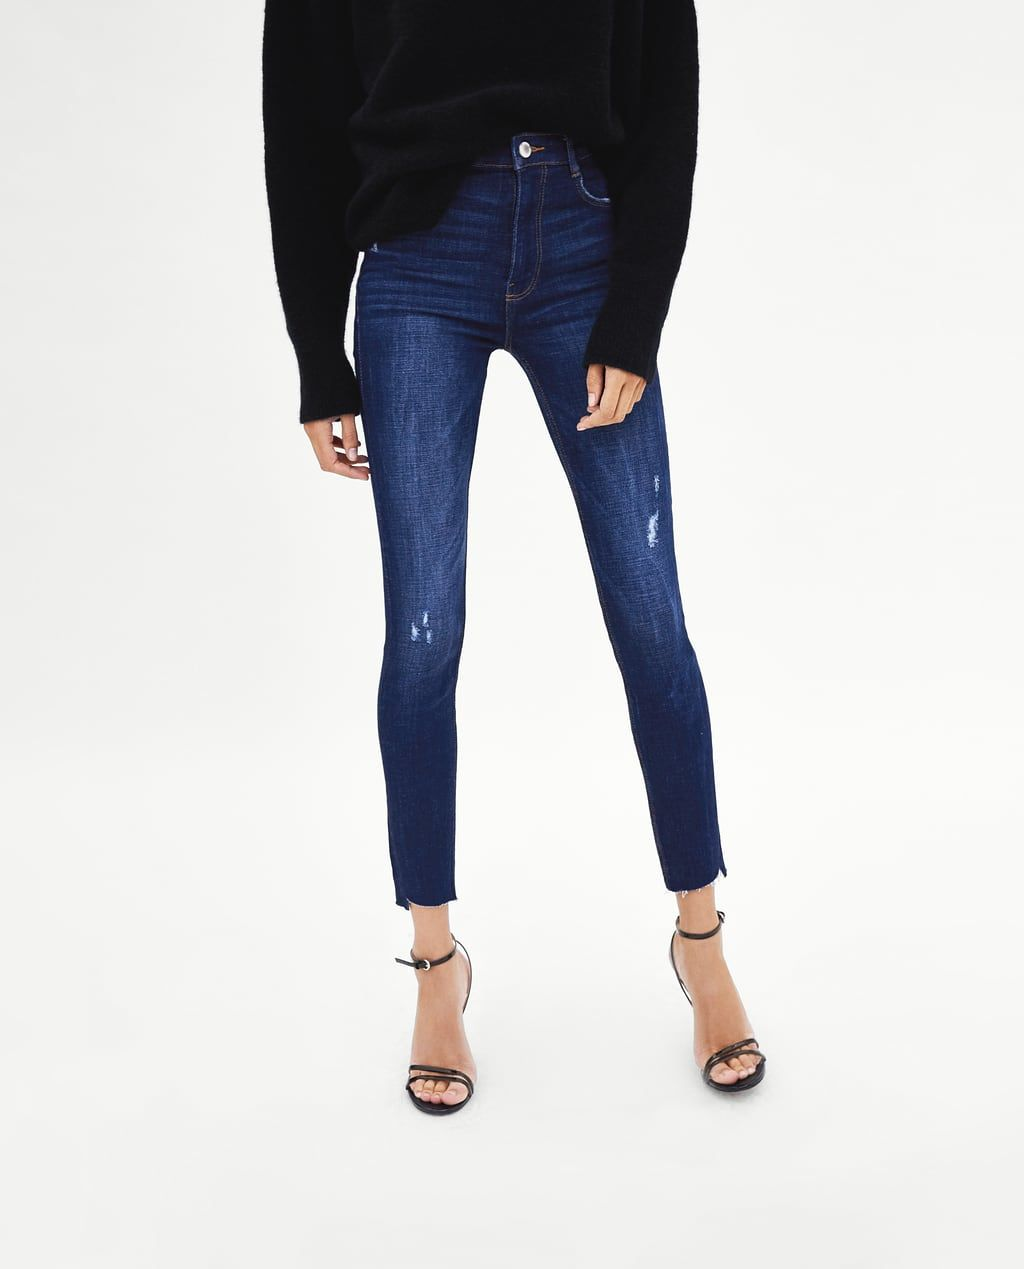 92dd936d HI-RISE SKINNY 'VINTAGE' RIPPED JEGGINGS-View All-JEANS-WOMAN | ZARA United  States